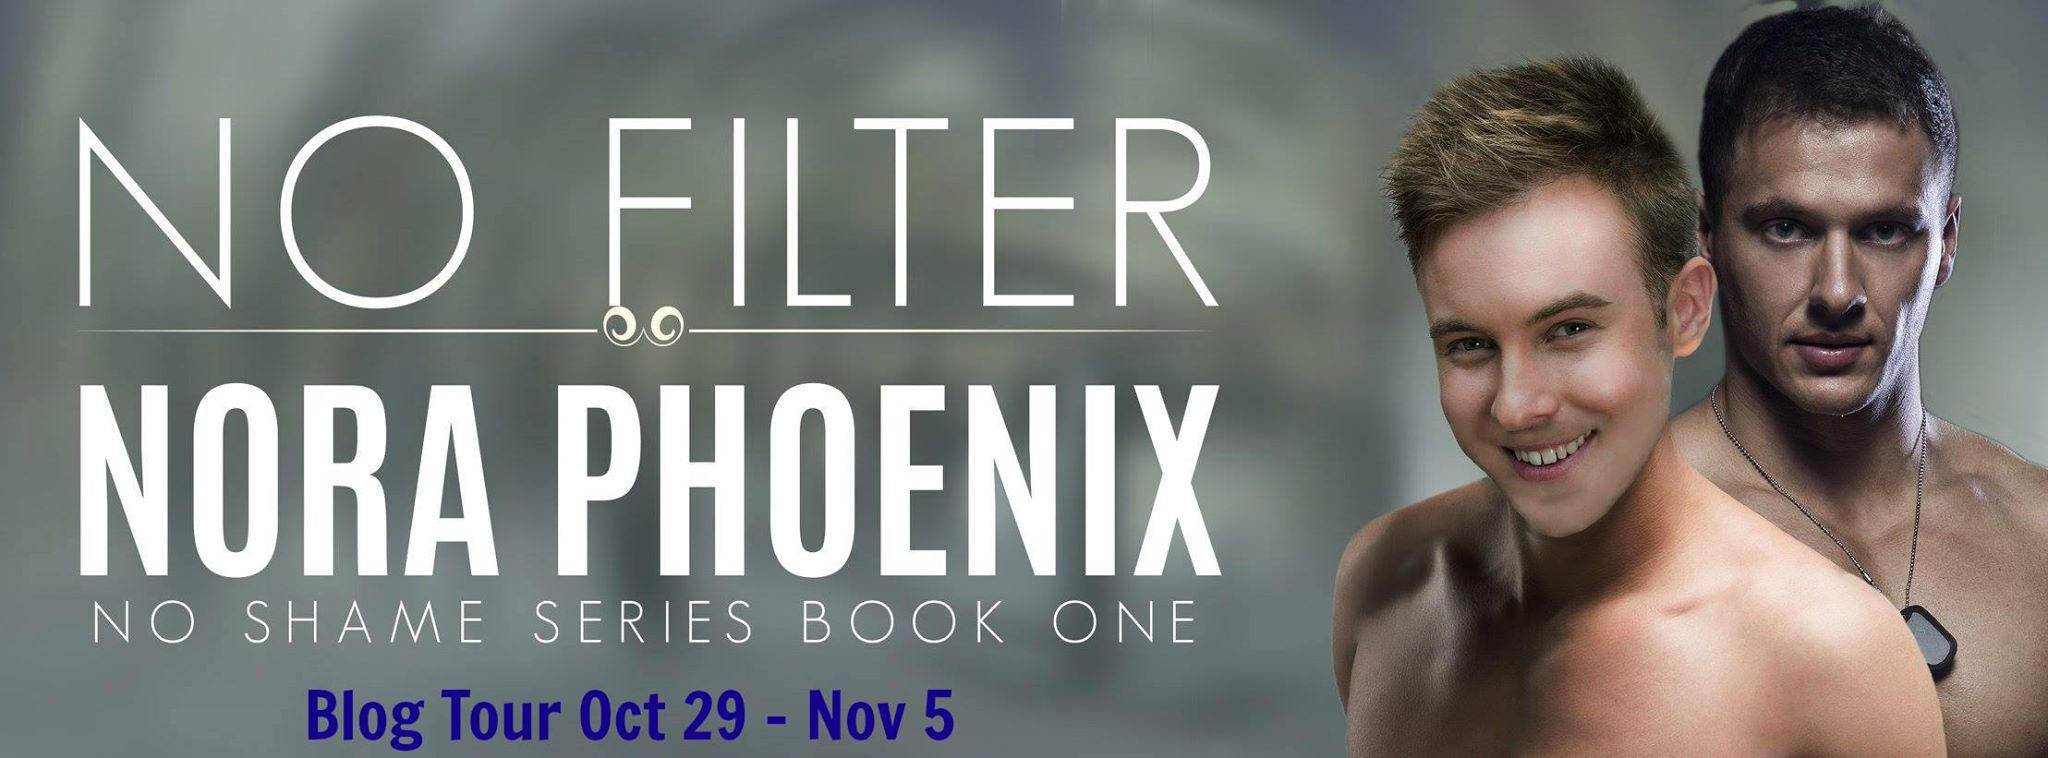 Get No Filter by Nora Phoenix on Amazon & Kindle Unlimited